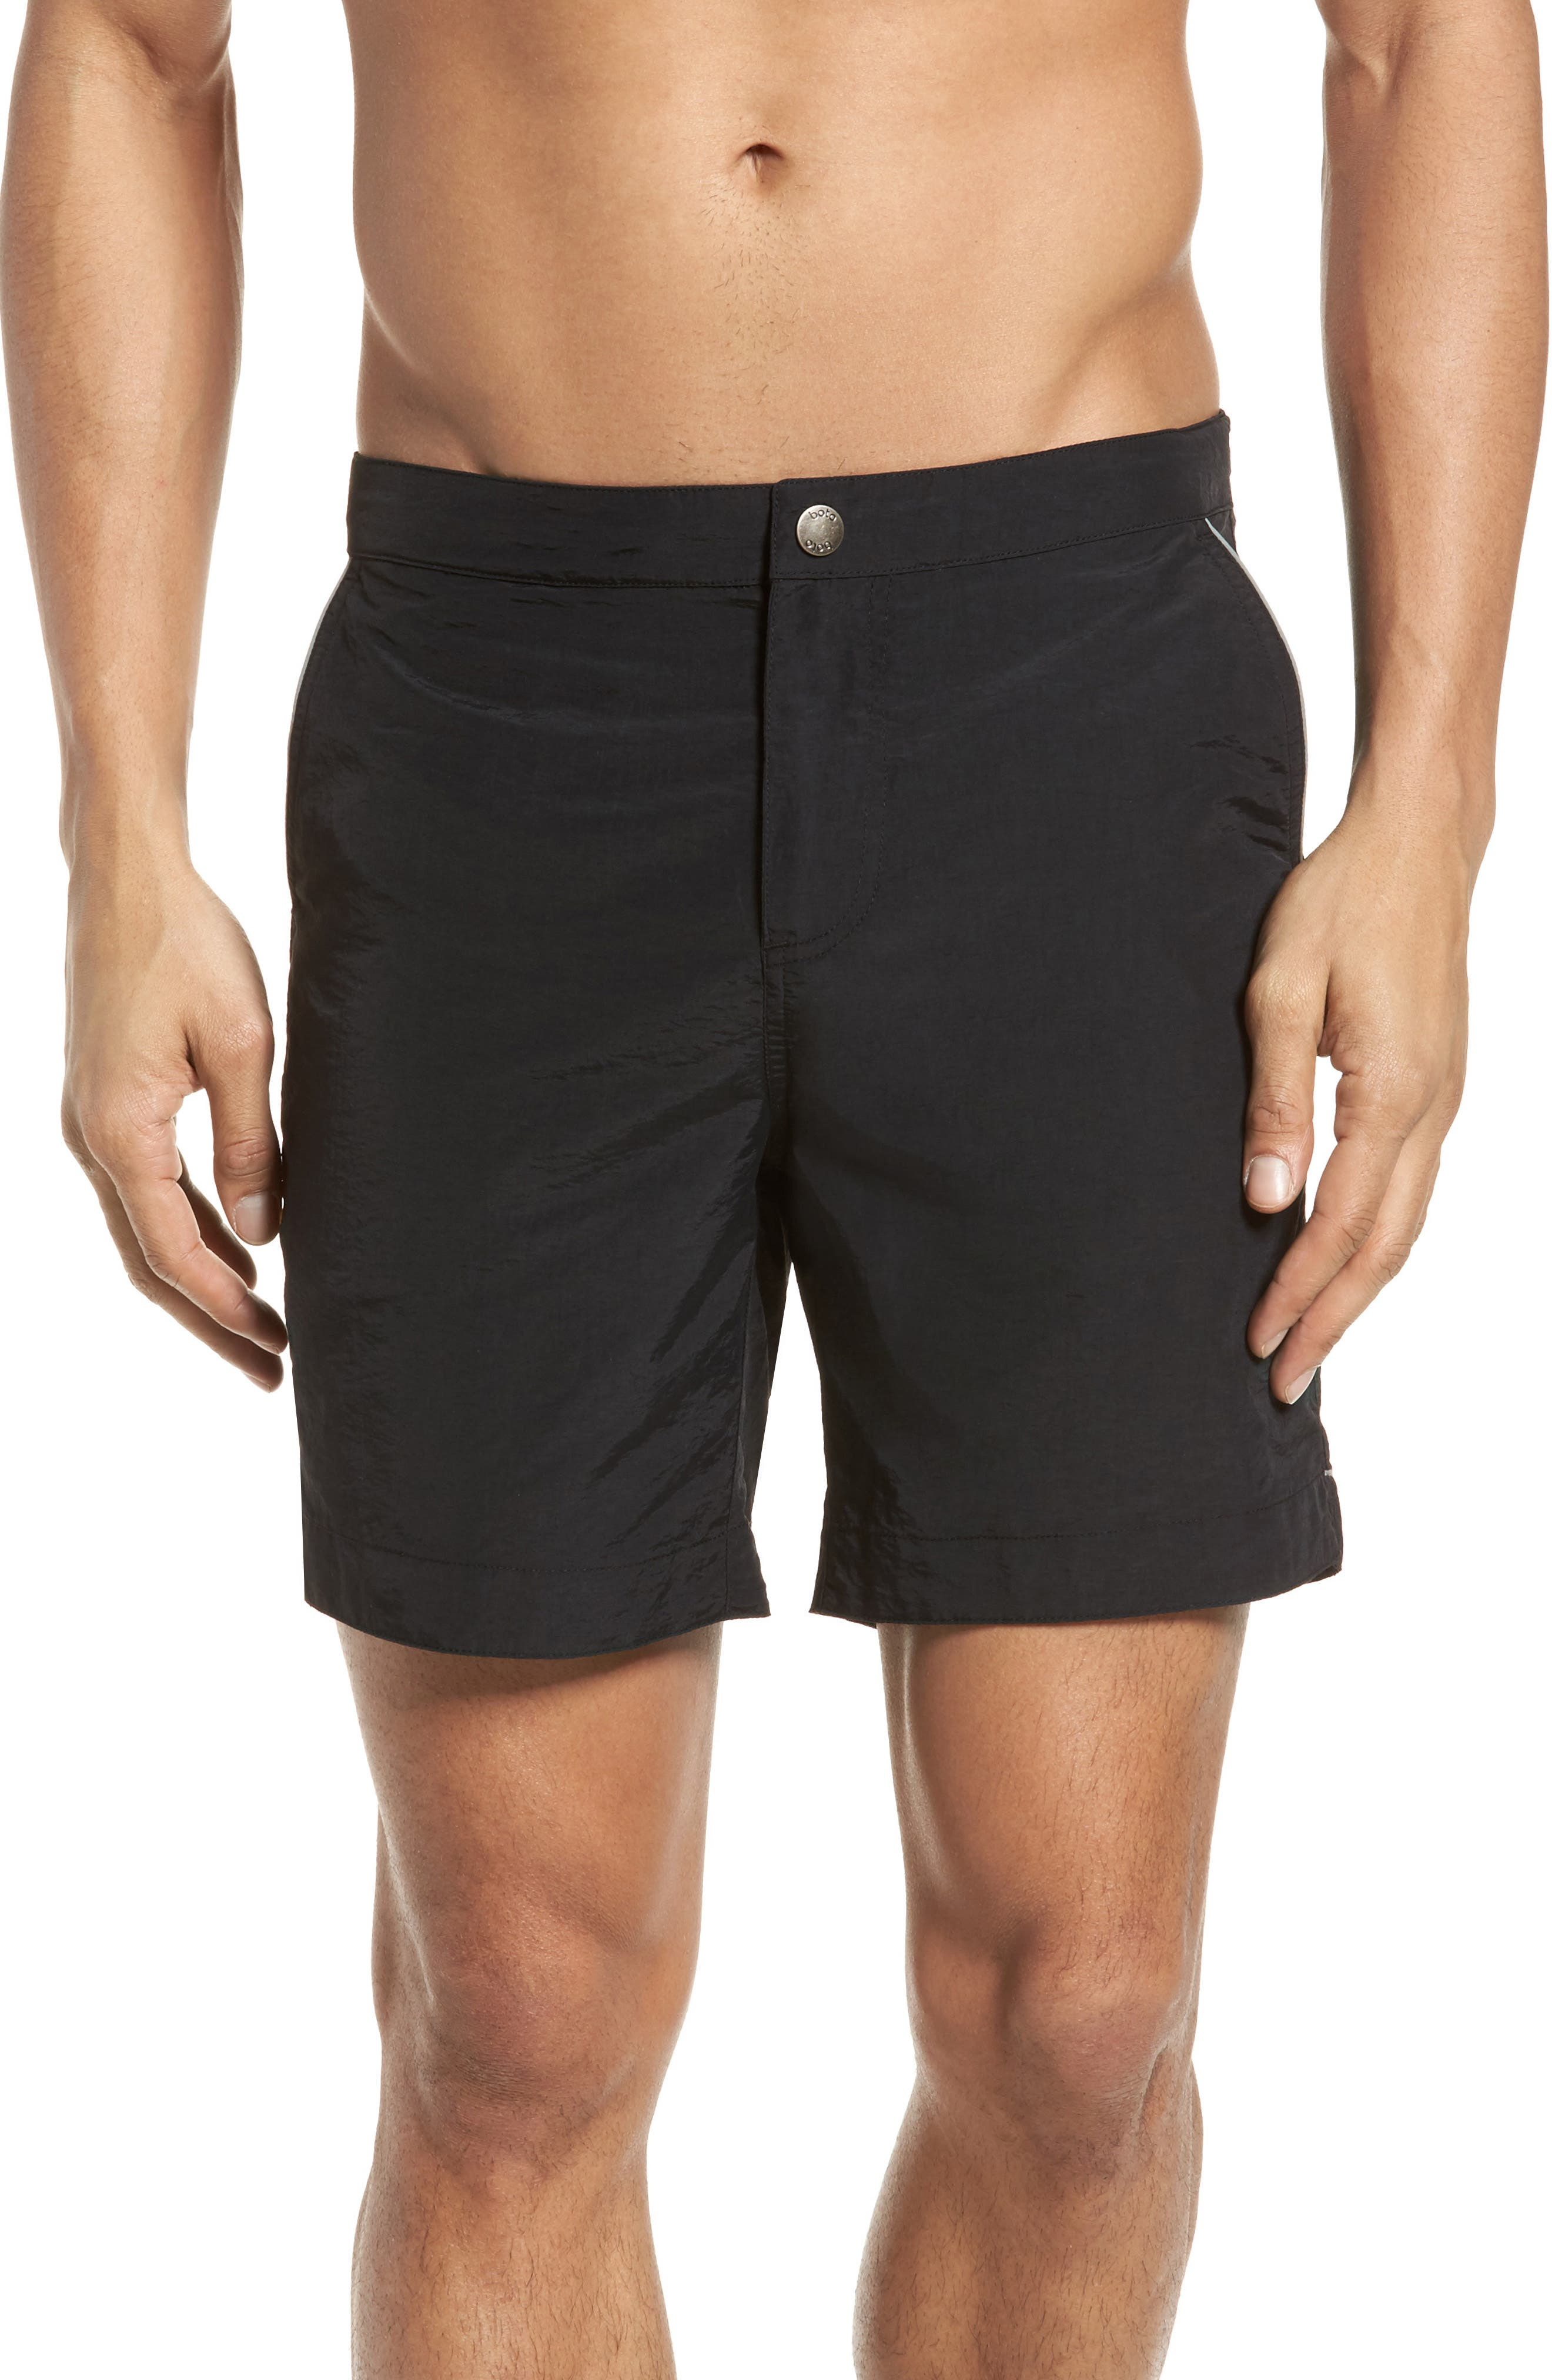 Rio Regular Fit Swim Trunks,                         Main,                         color, 001